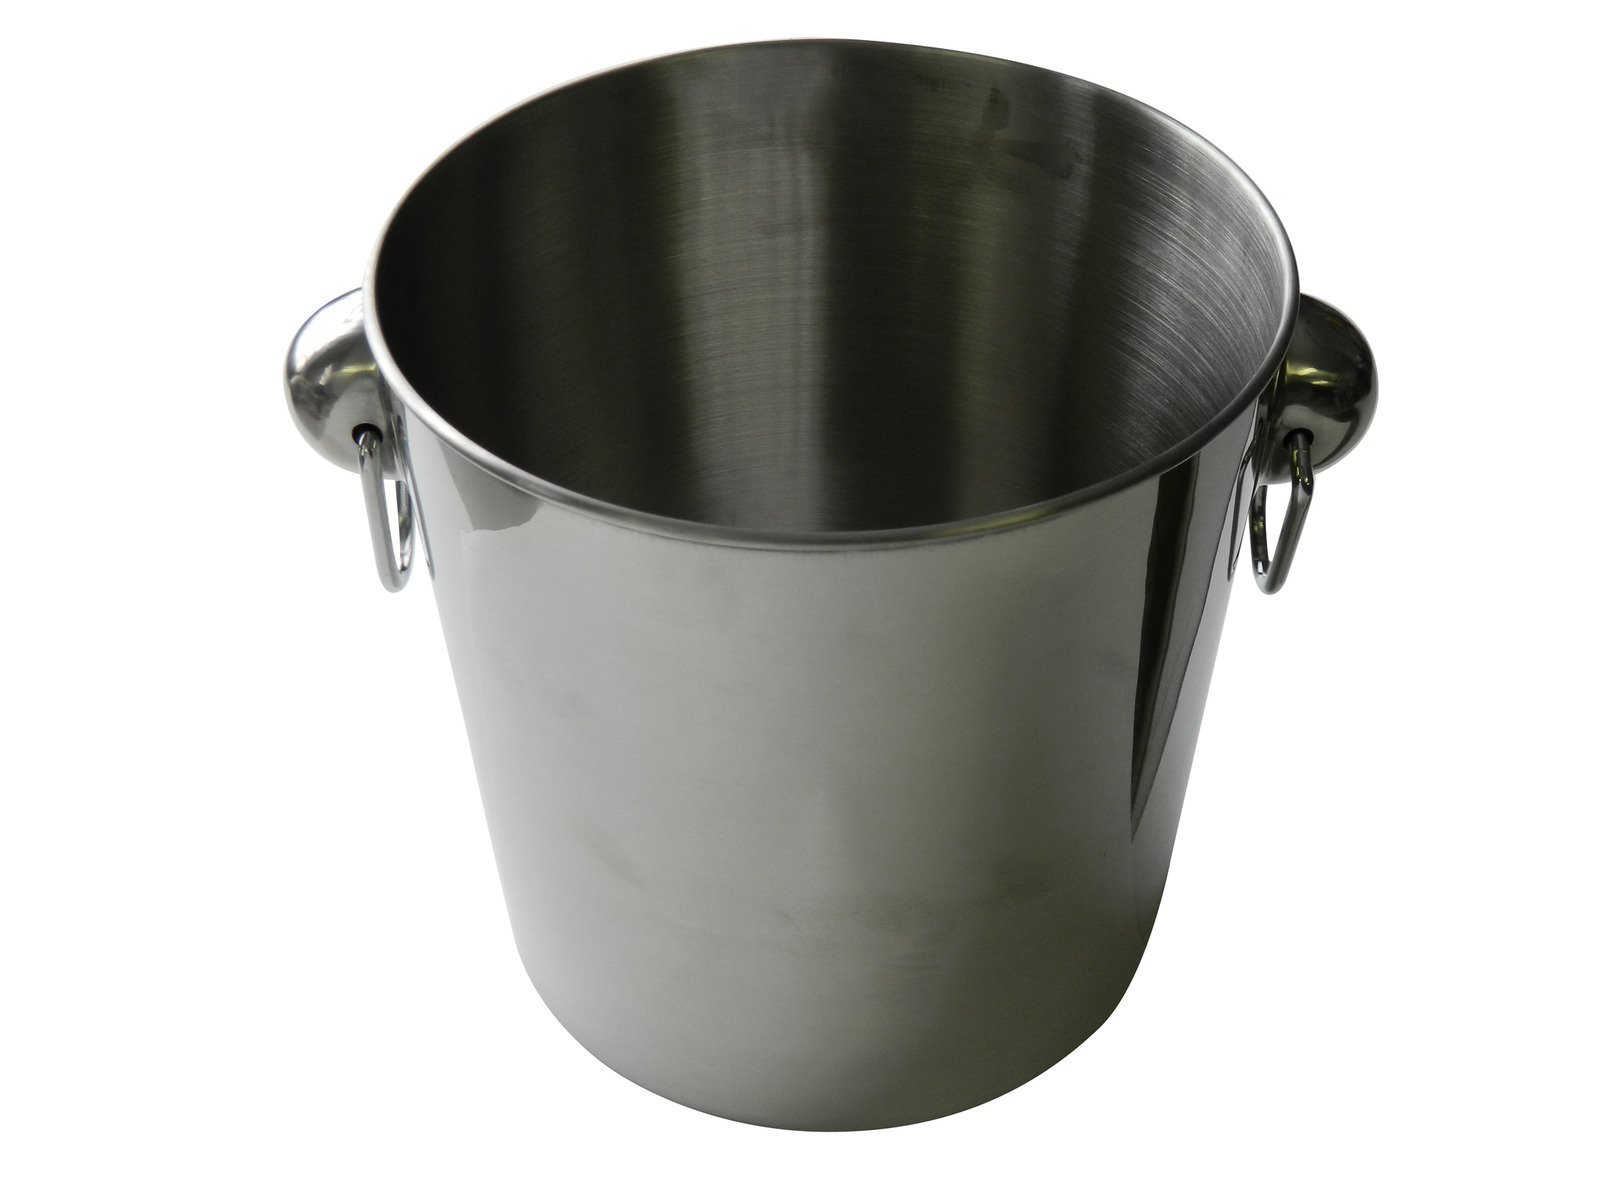 Stainless Steel Large Ice Bucket Classy Design Kitchen Gadgets Restaurant Bartending Champagne Cocktails Tool